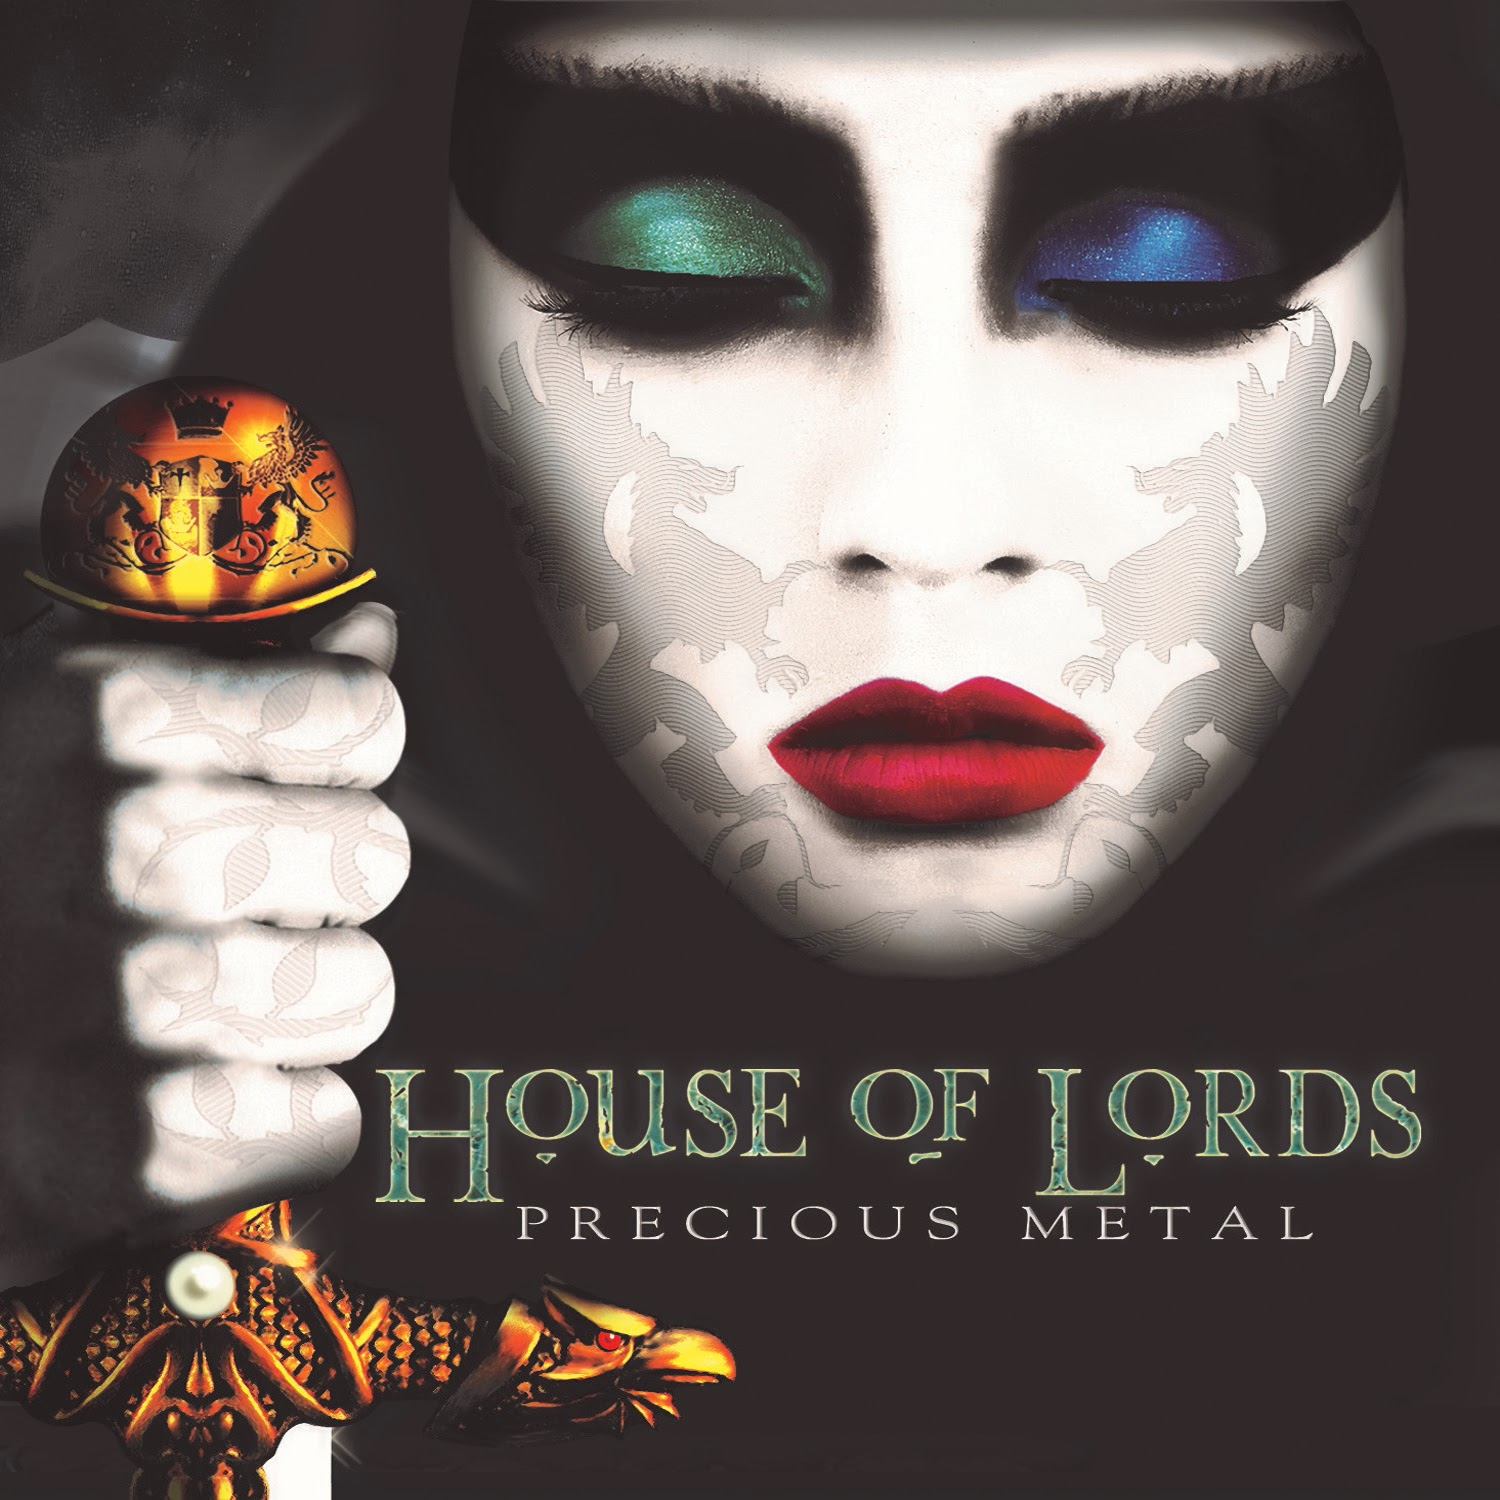 http://rock-and-metal-4-you.blogspot.de/2014/02/cd-review-house-of-lords-precious-metal.html